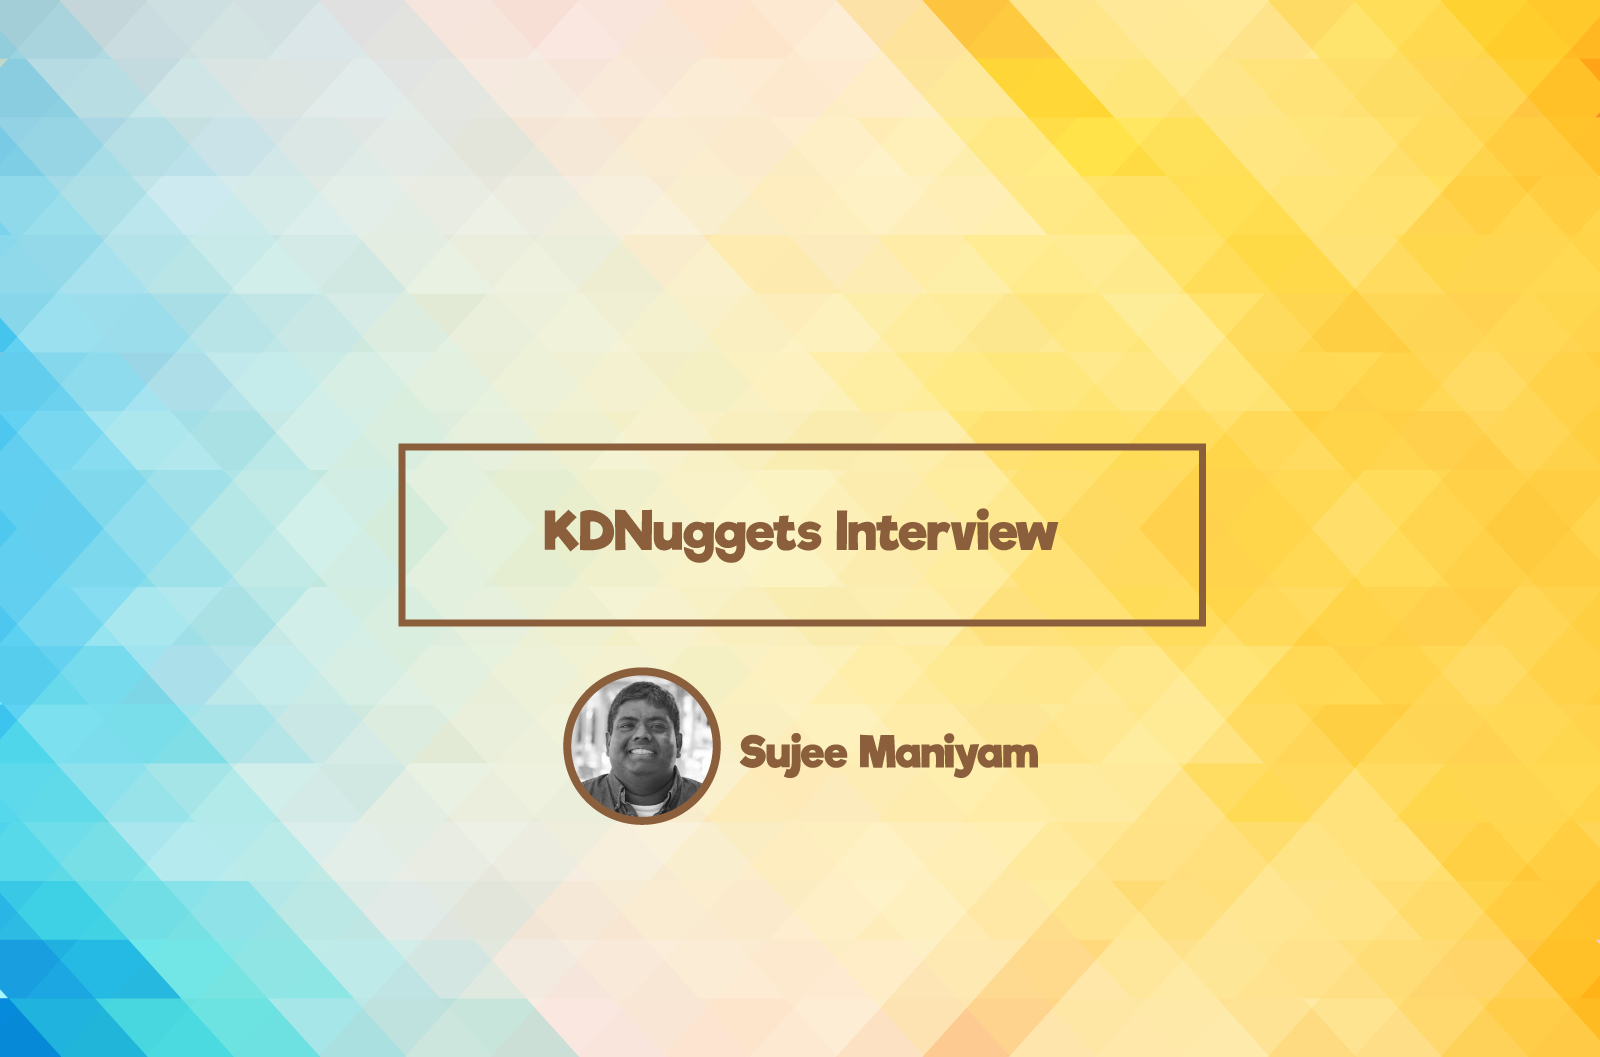 KDNuggets Interview With Sujee Maniyam